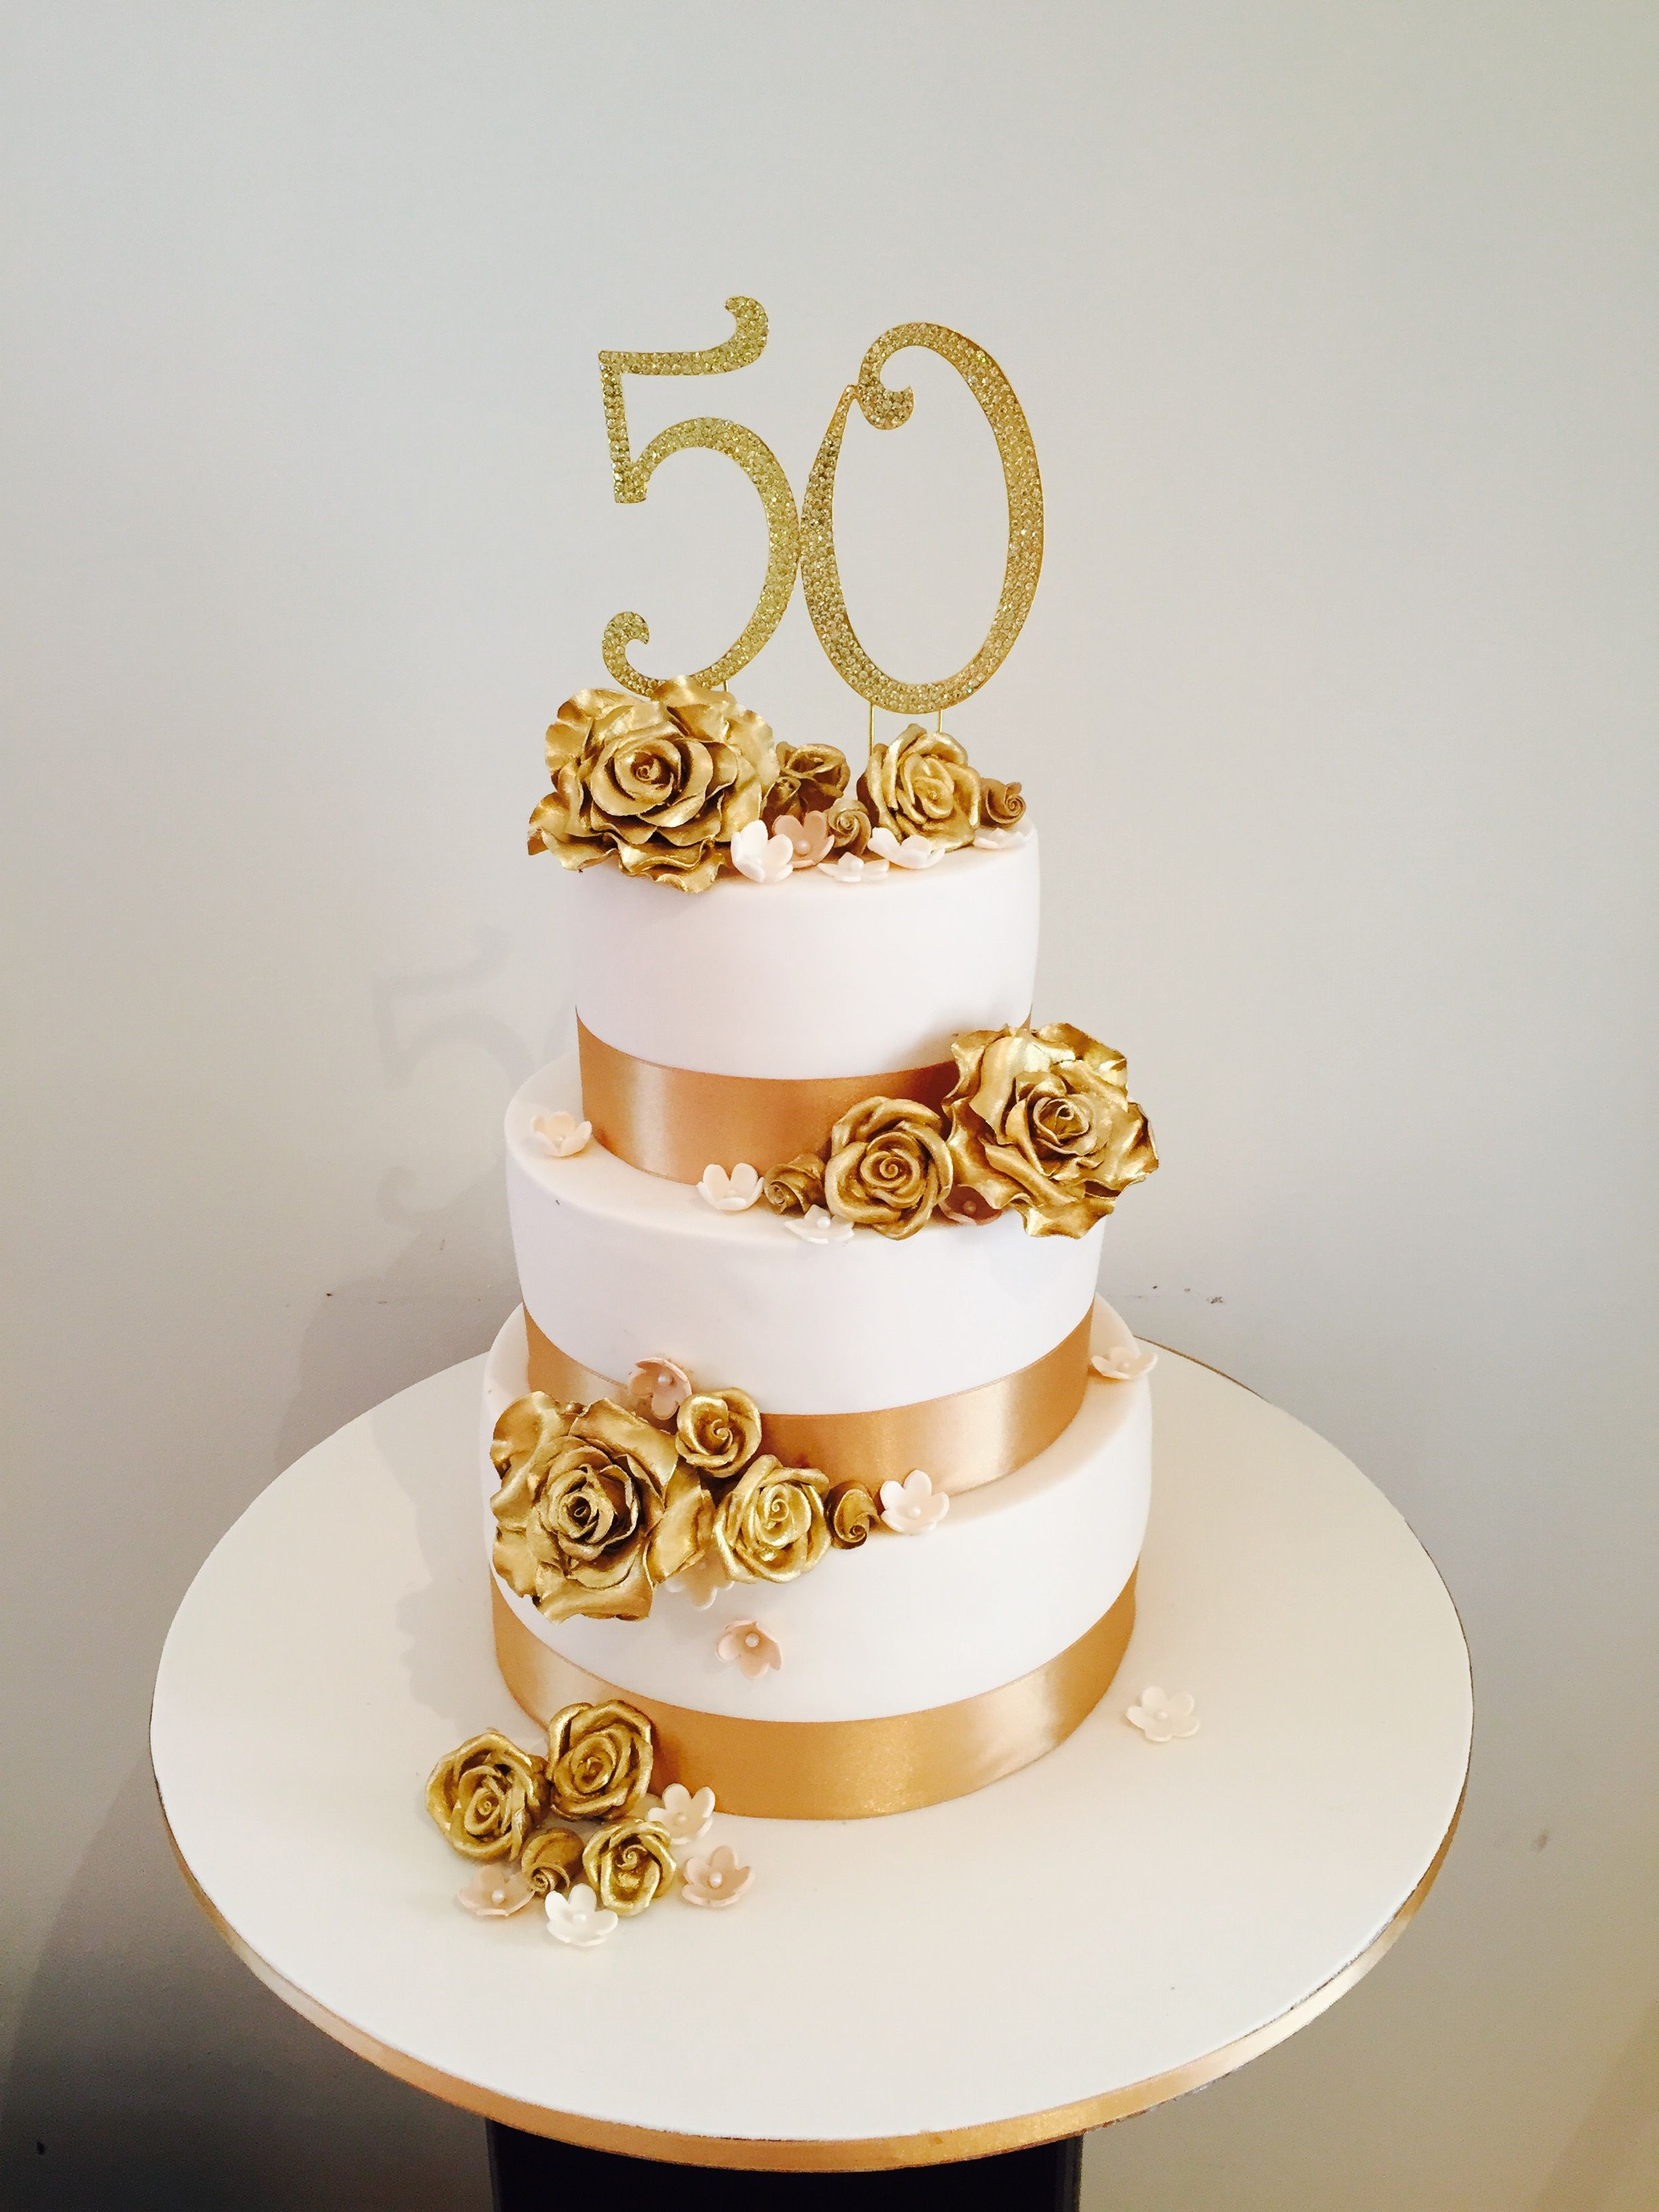 50th anniversary white and gold cake decorated with